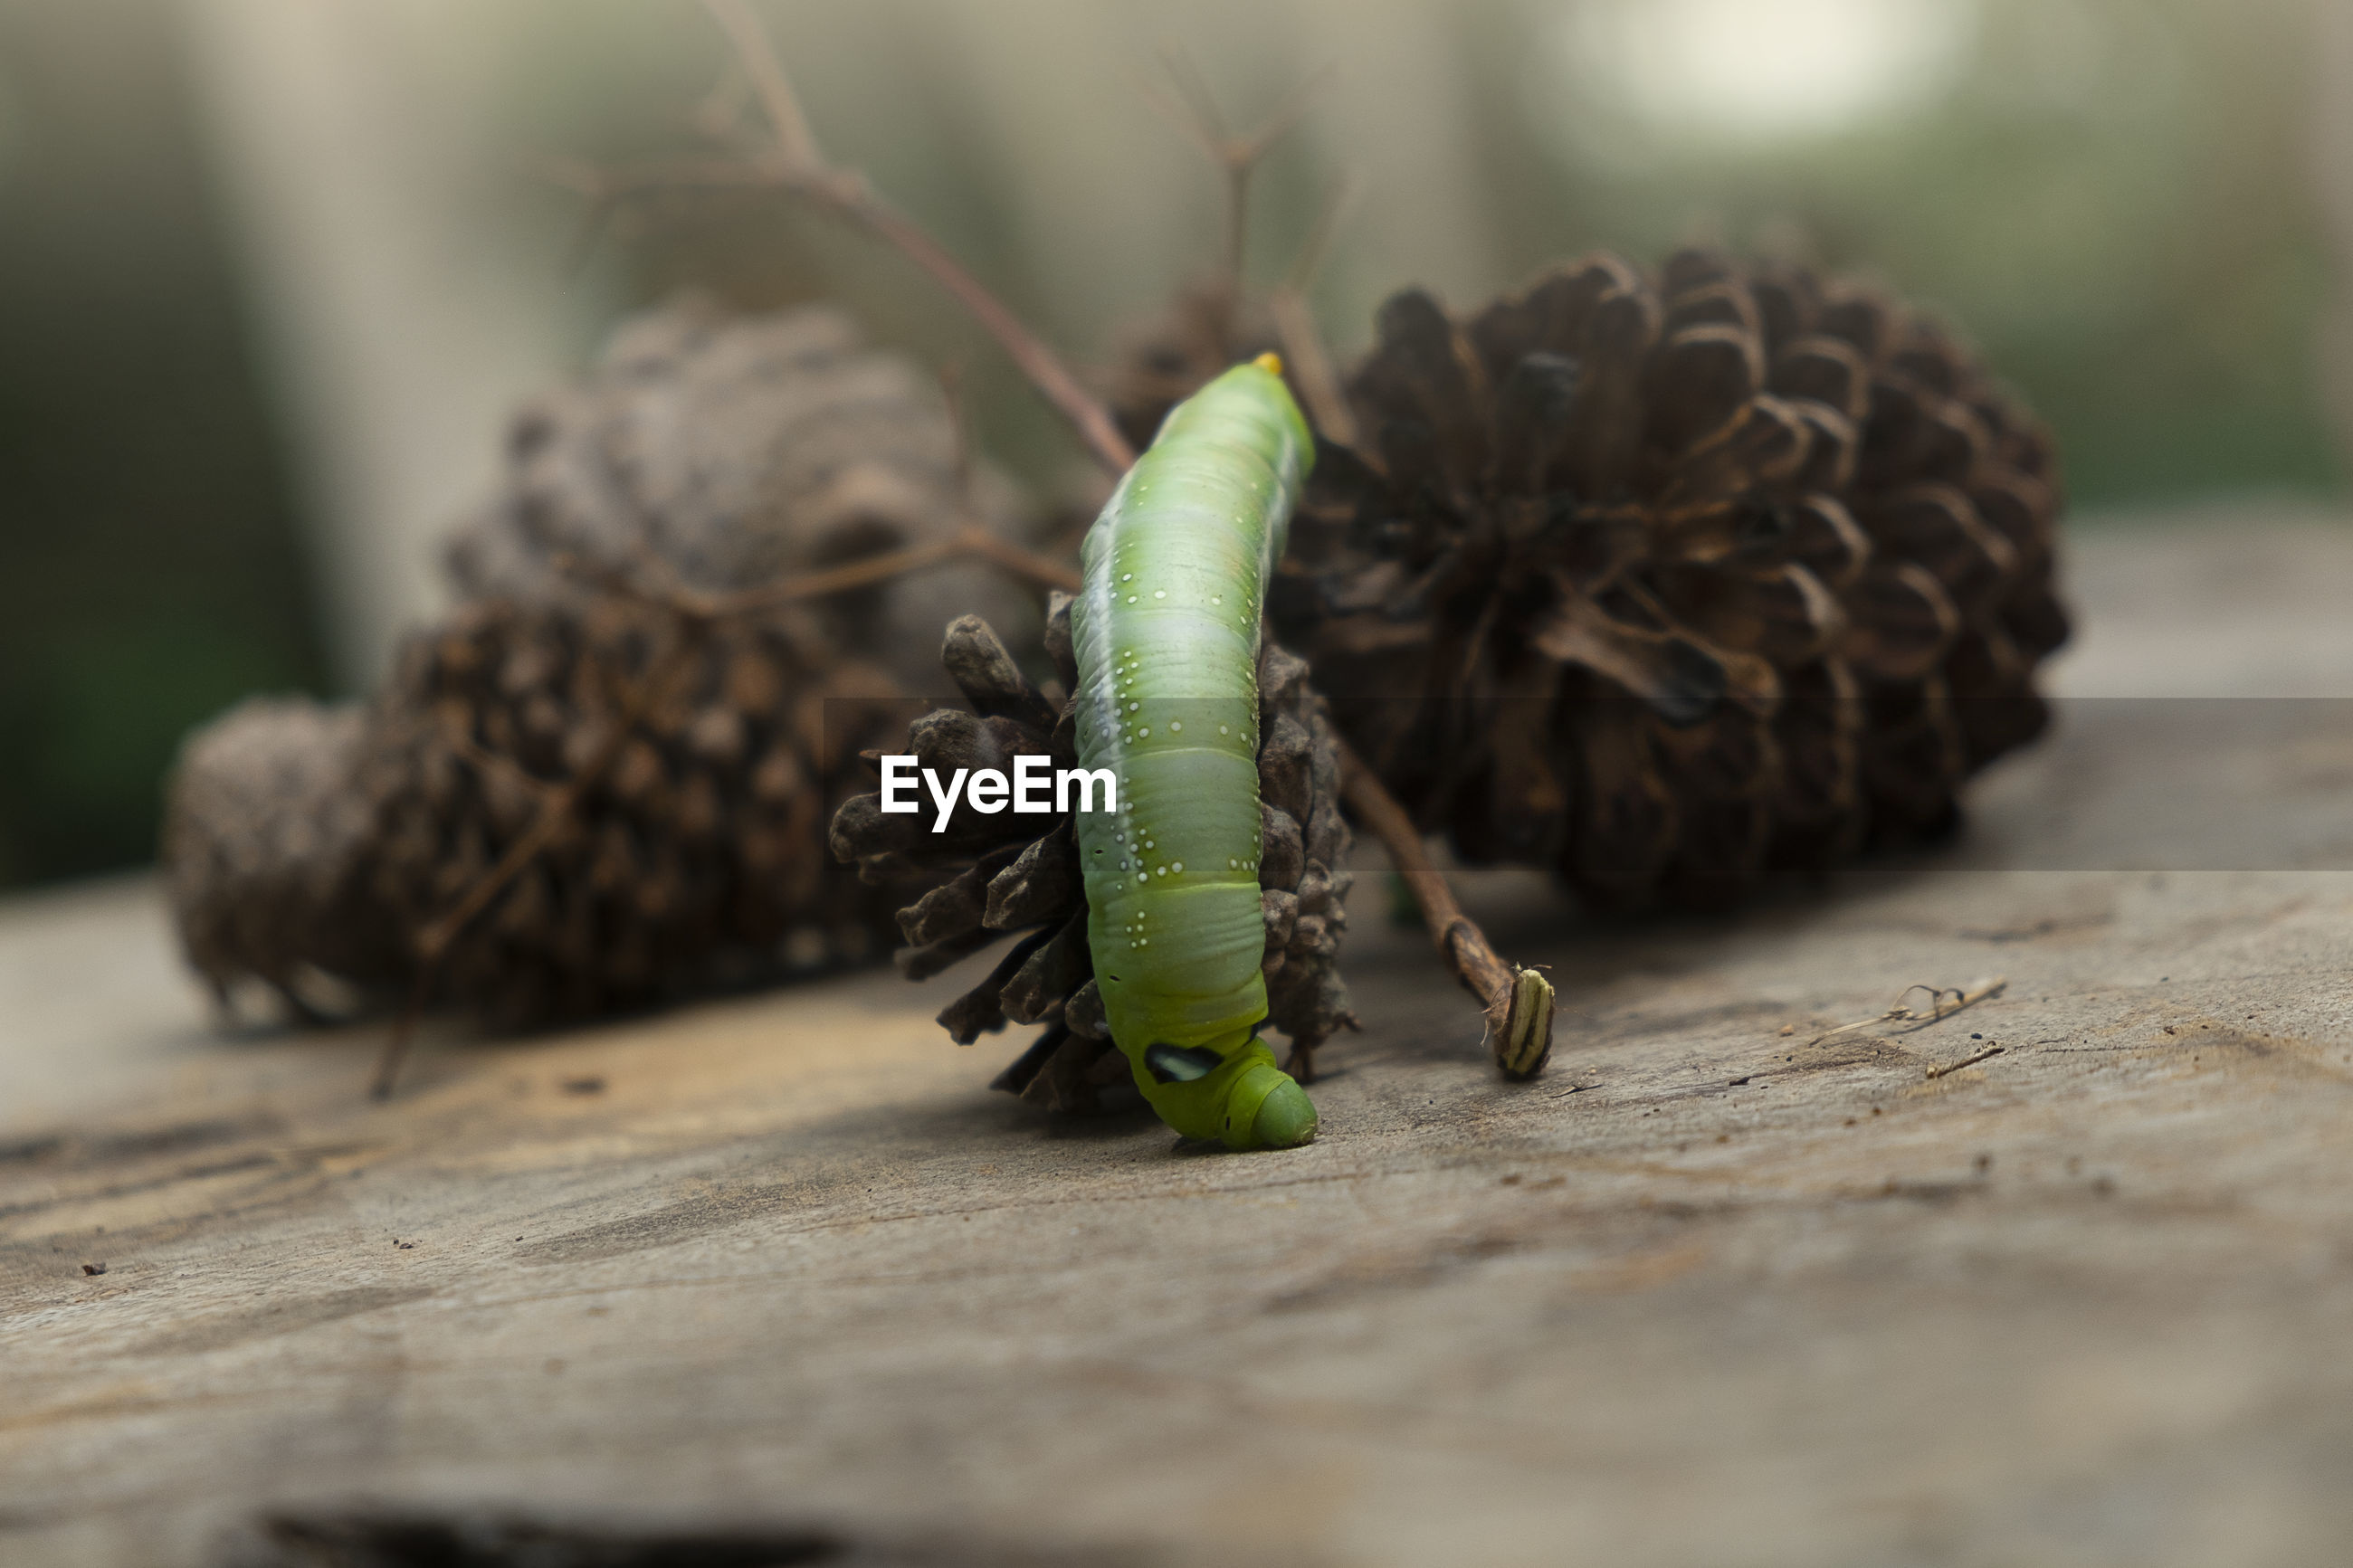 Green worm caterpillar animals on wood and pine cone blur background